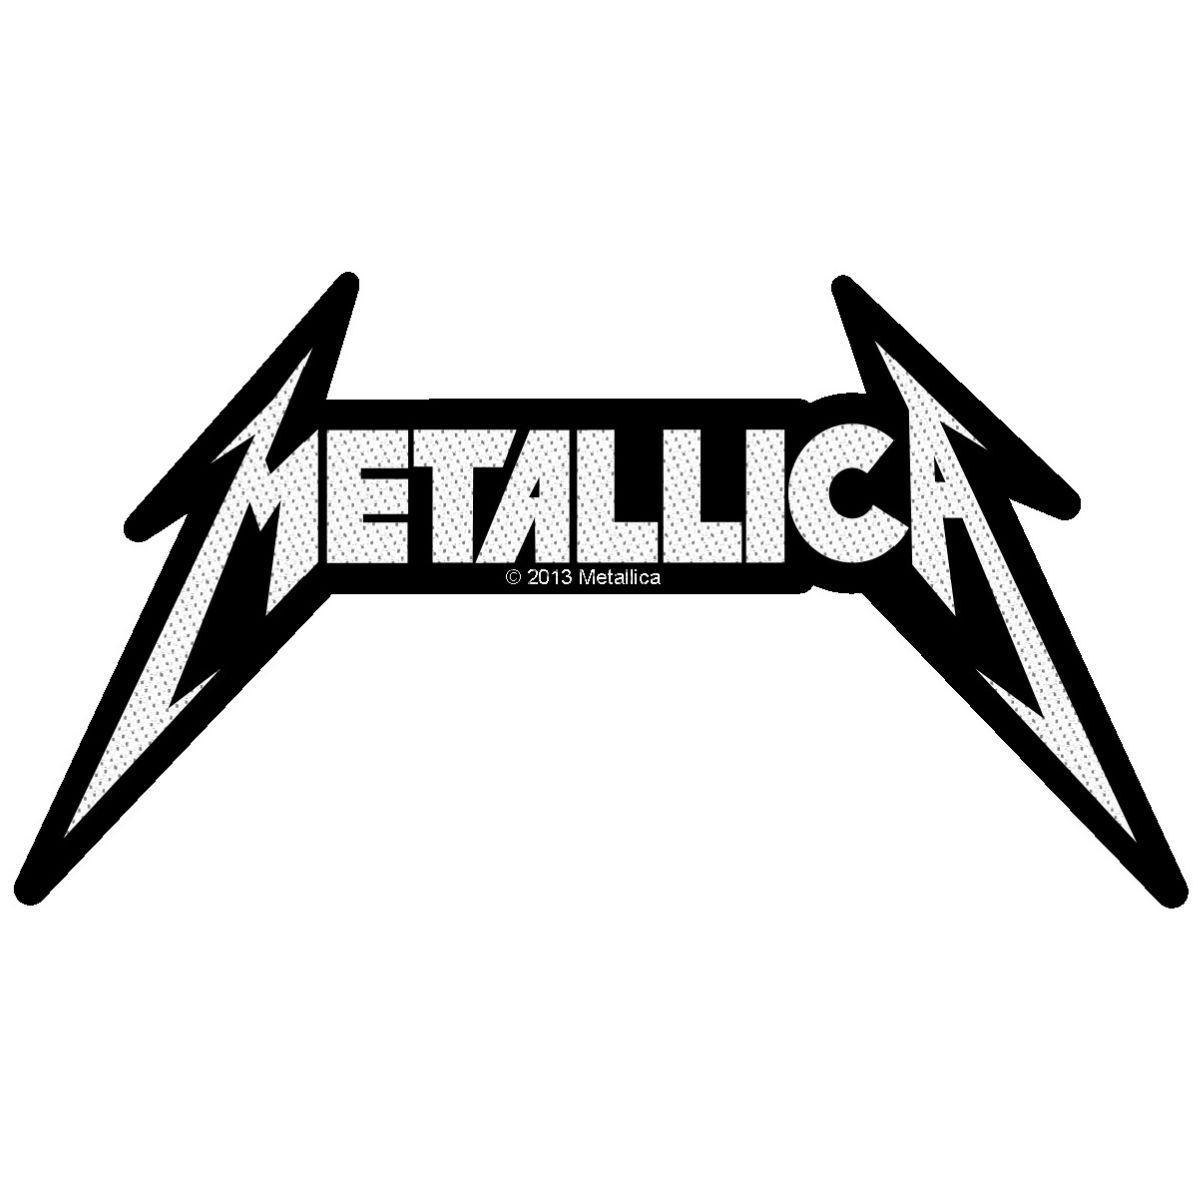 metallica lighting logo wallpaper - photo #33